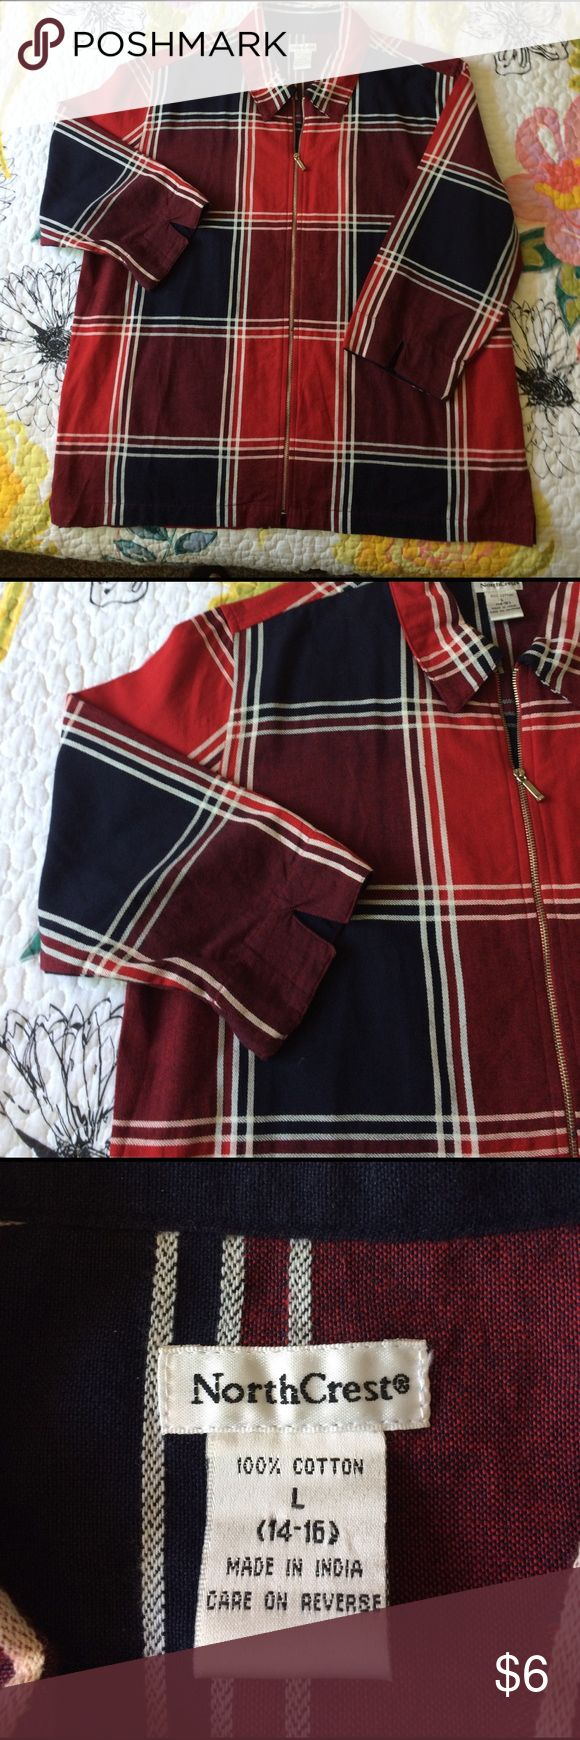 Ladies summer jacket Beautiful colors, zips up the front 3/4 sleeves, red, blue, purple and white. Excellent condition%100 cotton, great for summer. NorthCrest Jackets & Coats